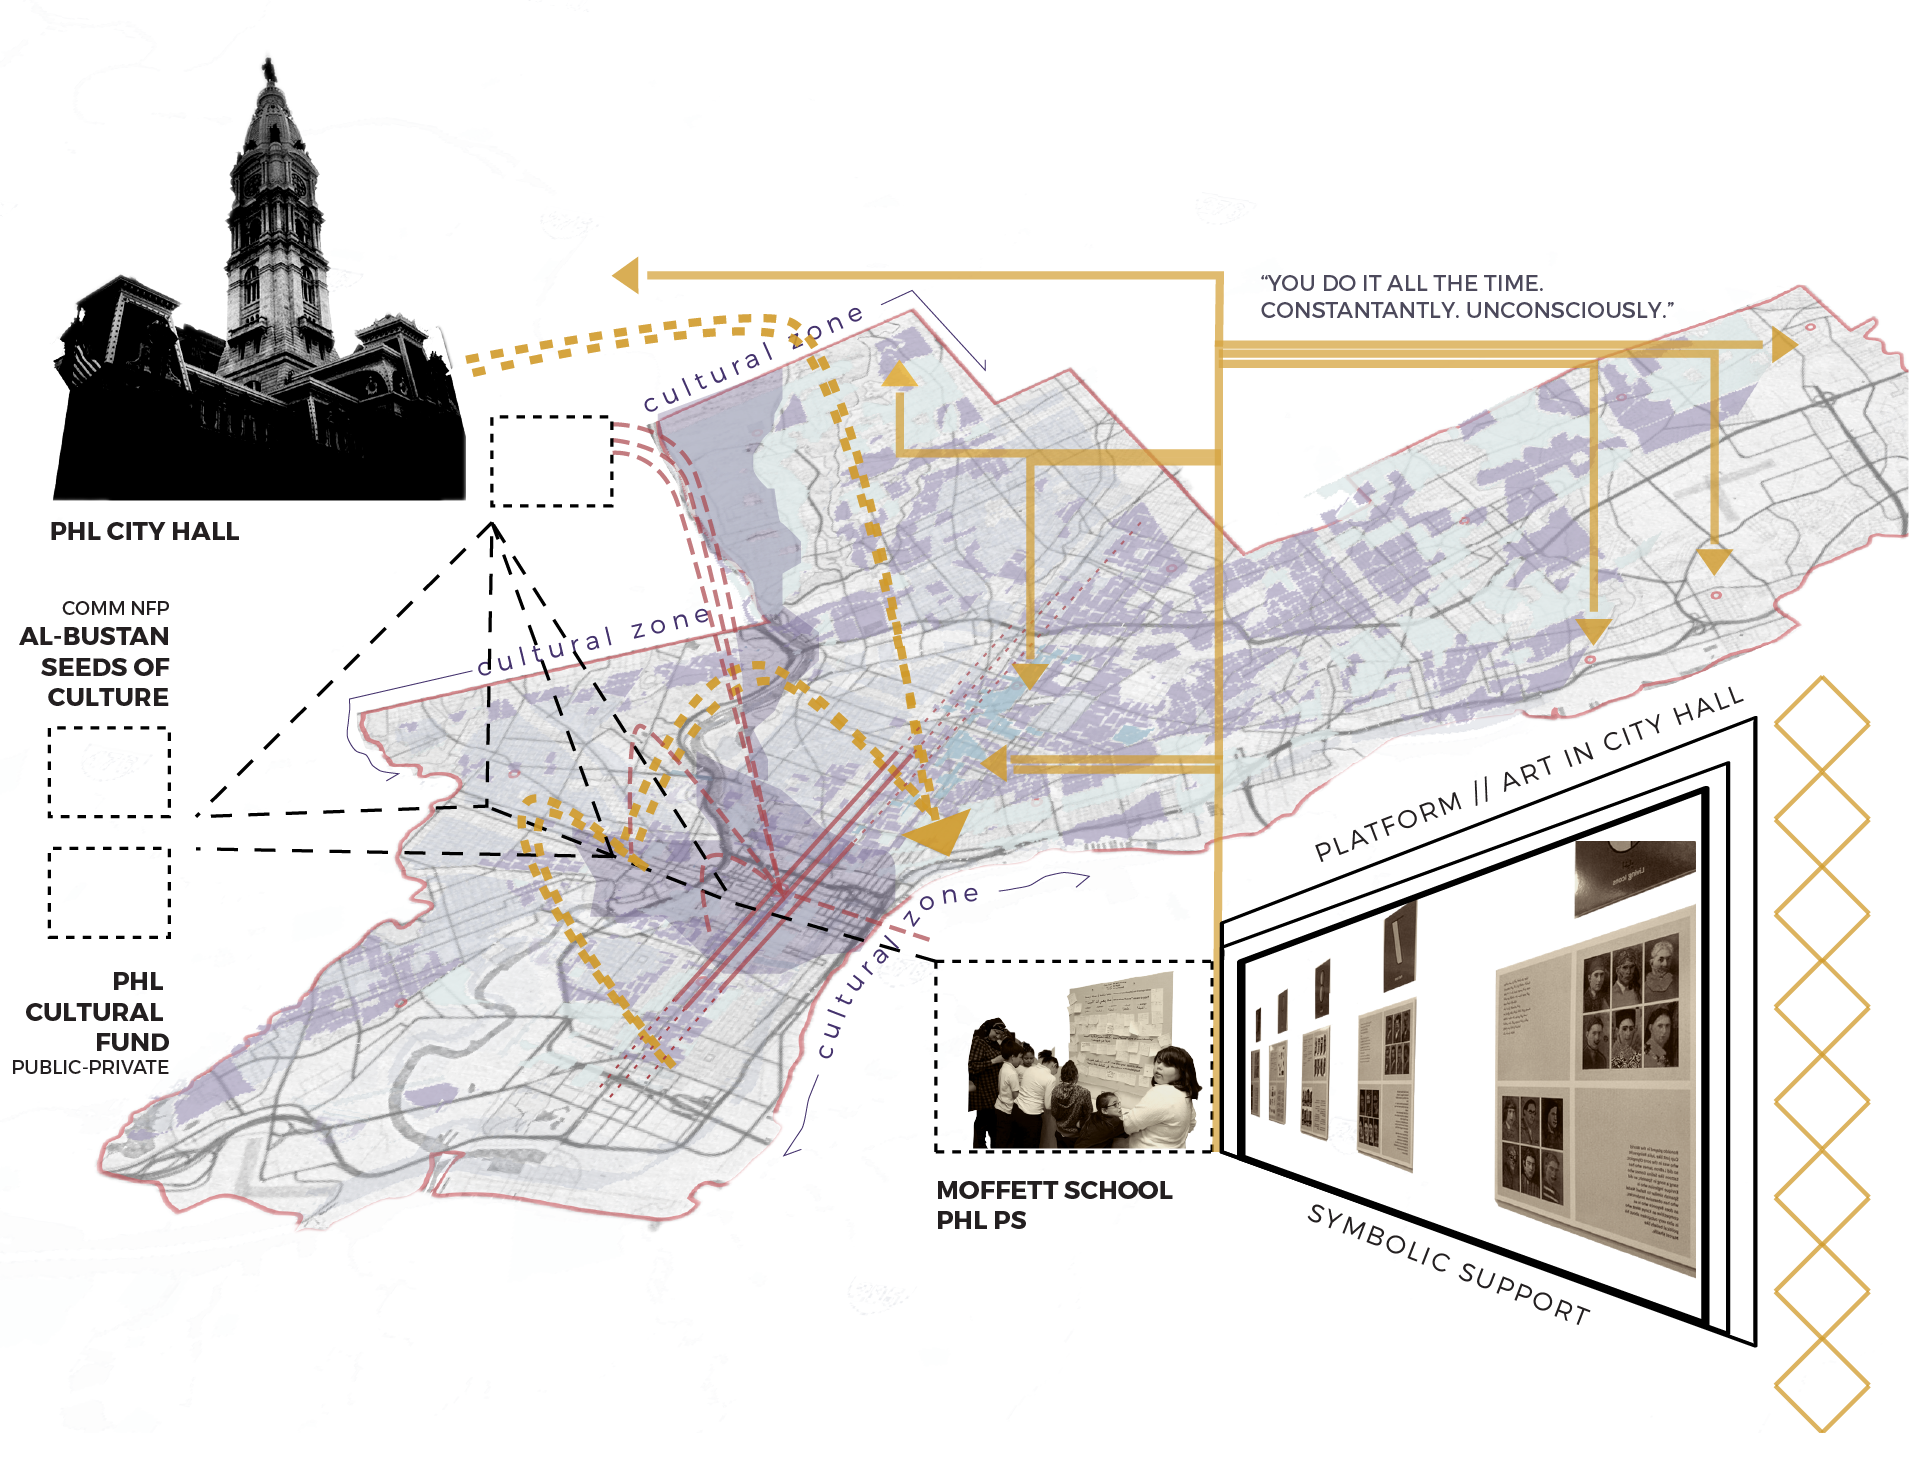 Understanding the city of Philadelphia as perpetually transforming allows for critical analysis of current systems of urban governance while also creating openings for new possibilities. Putting in conversation unlikely allies moves toward processes of inclusion and co-design of pluralistic frameworks for arts and culture and diversity politics.